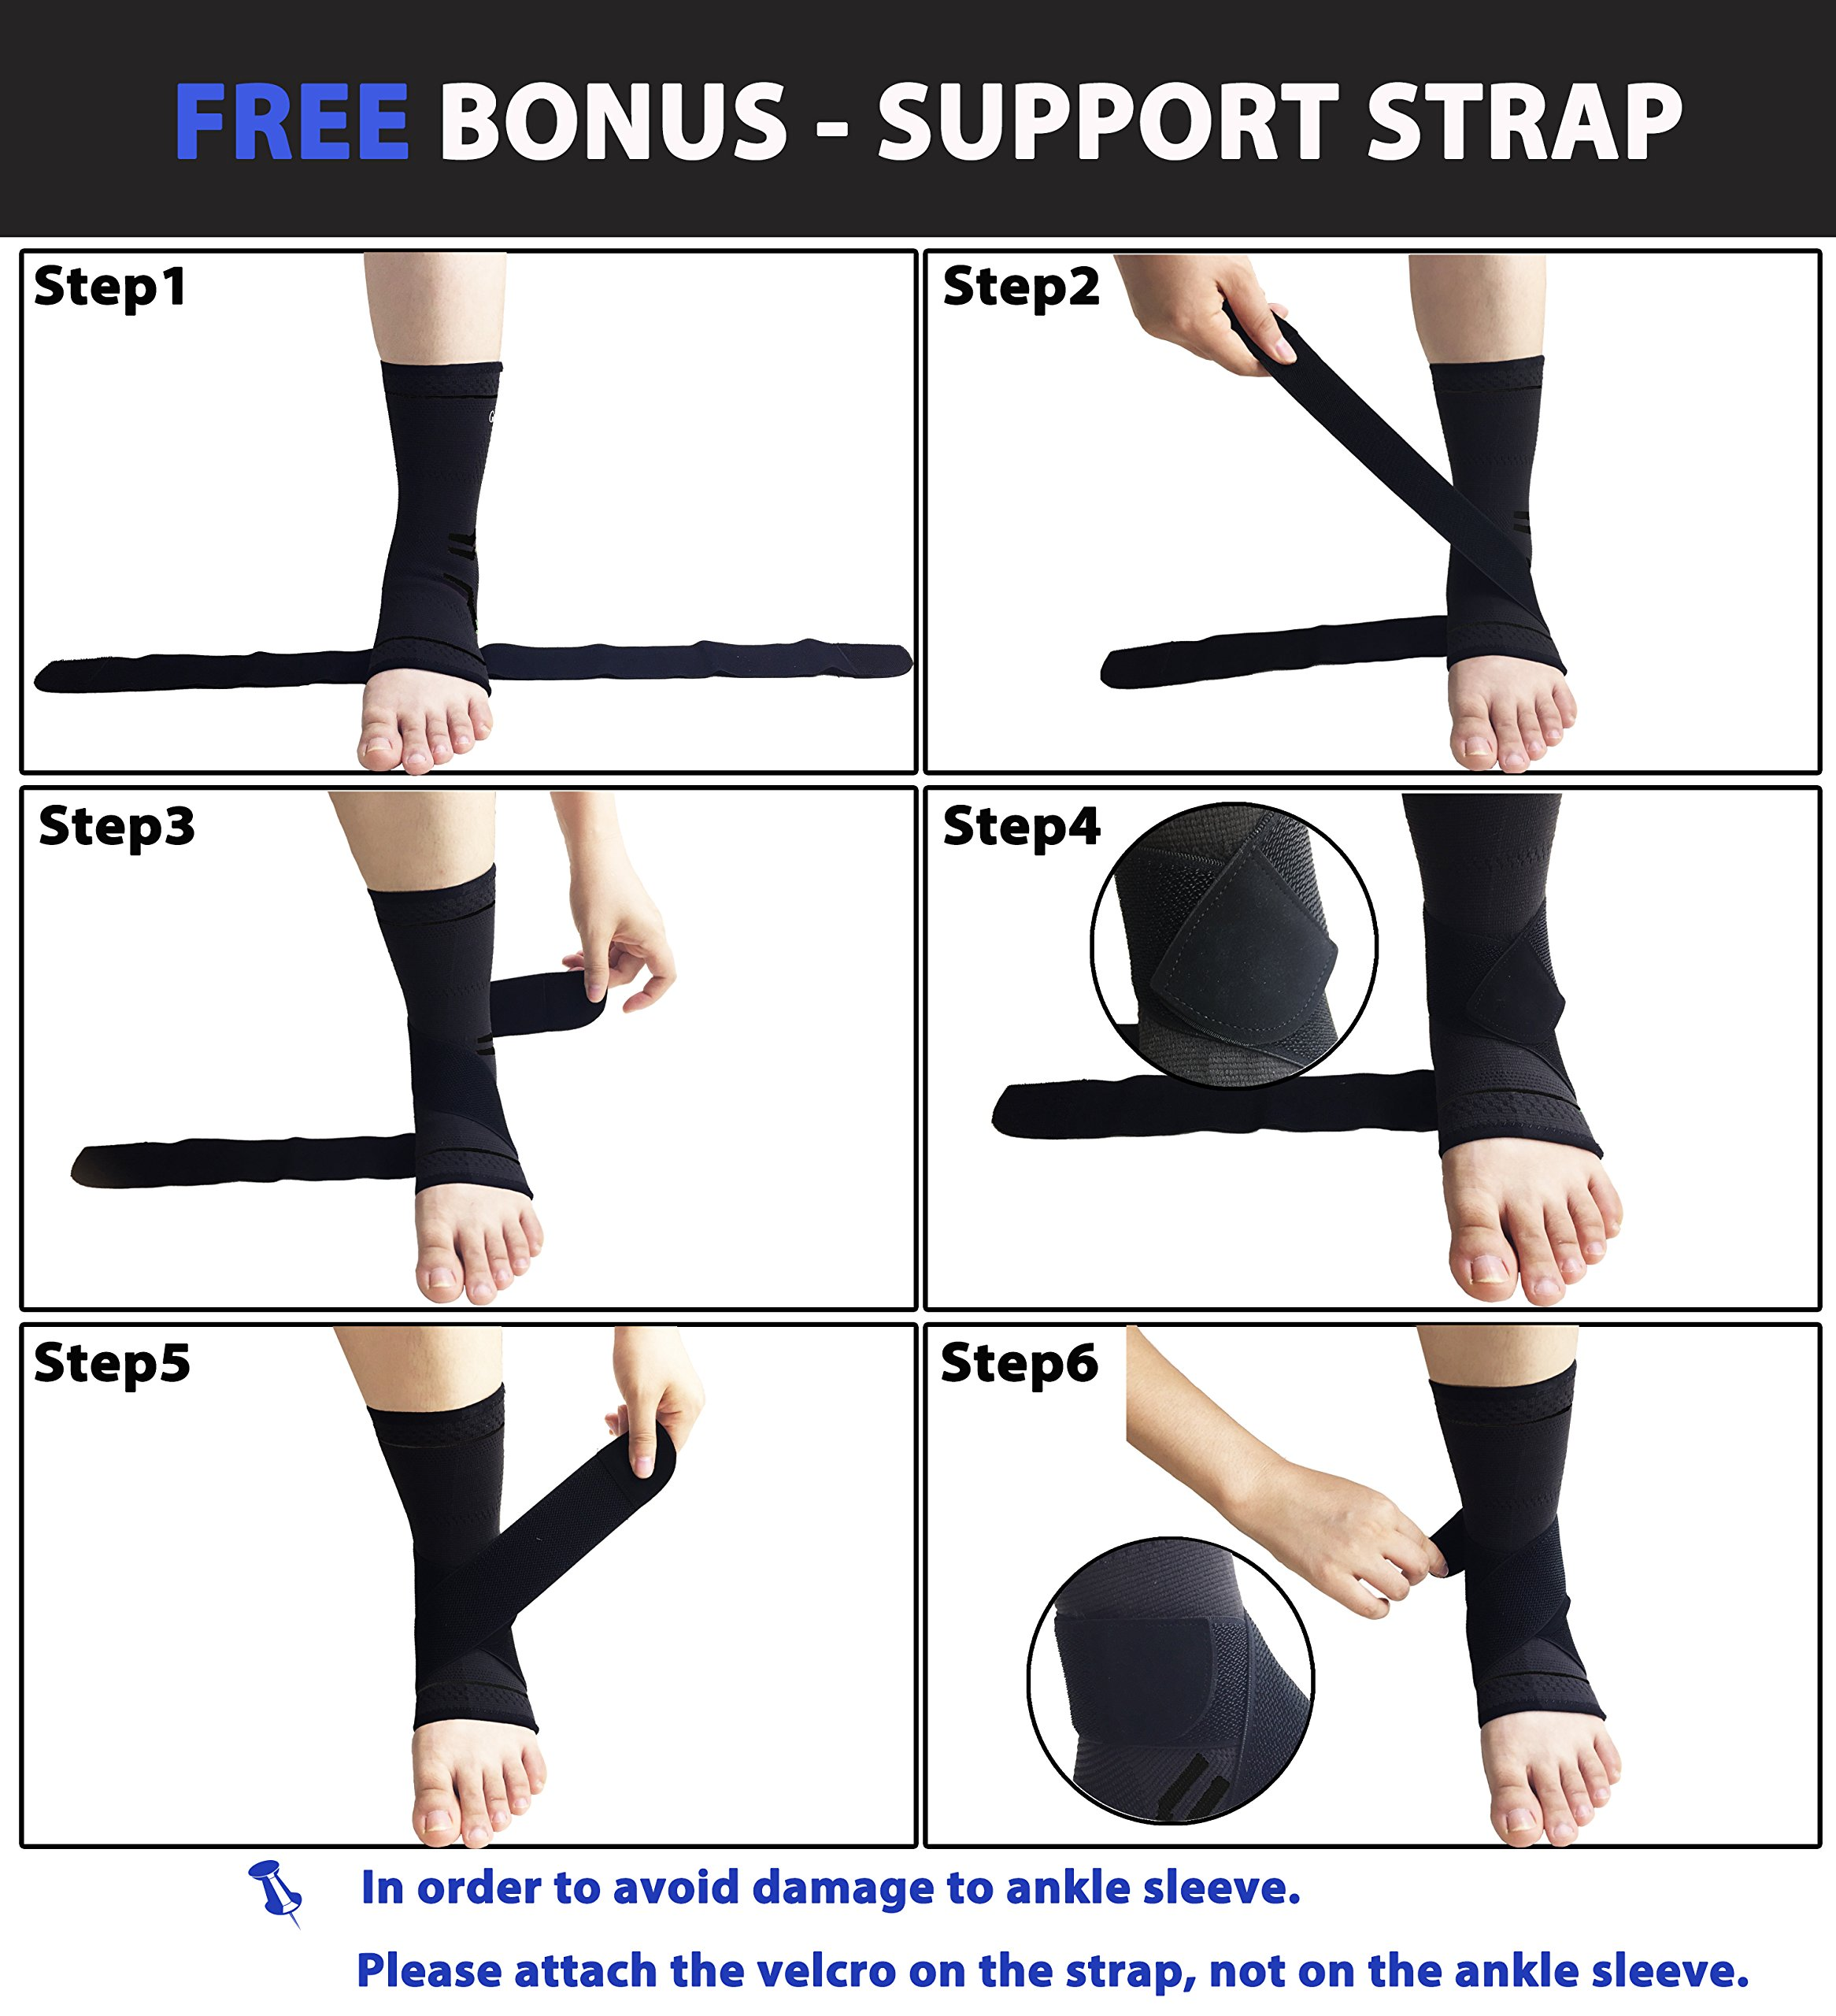 gonicc Professional Foot Sleeve Pair(2 Pcs) with Compression Wrap Support(Large, Black), Breathable, Stabiling Ligaments, Prevent Re-Injury, Boots Circulation, Soothe Achy Feet, Ankle Brace by gonicc (Image #4)